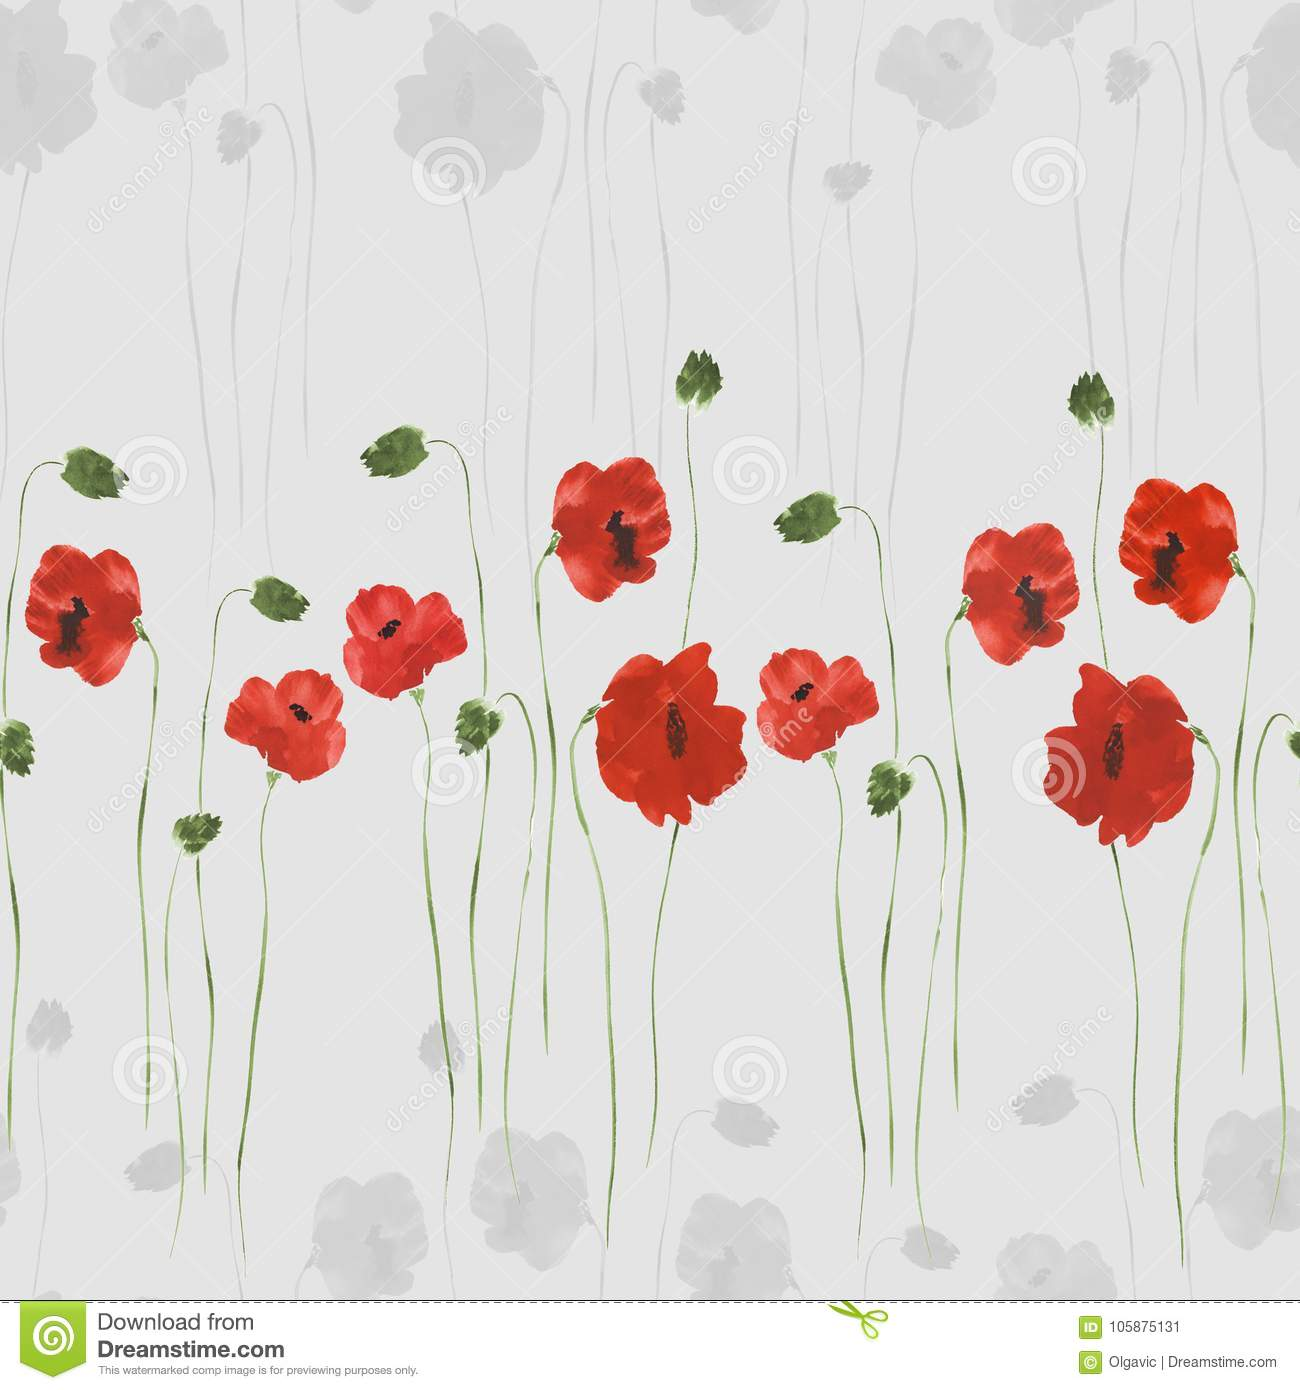 Seamless pattern of red and gray flowers of poppies with green stems seamless pattern of red and gray flowers of poppies with green stems on a light gray mightylinksfo